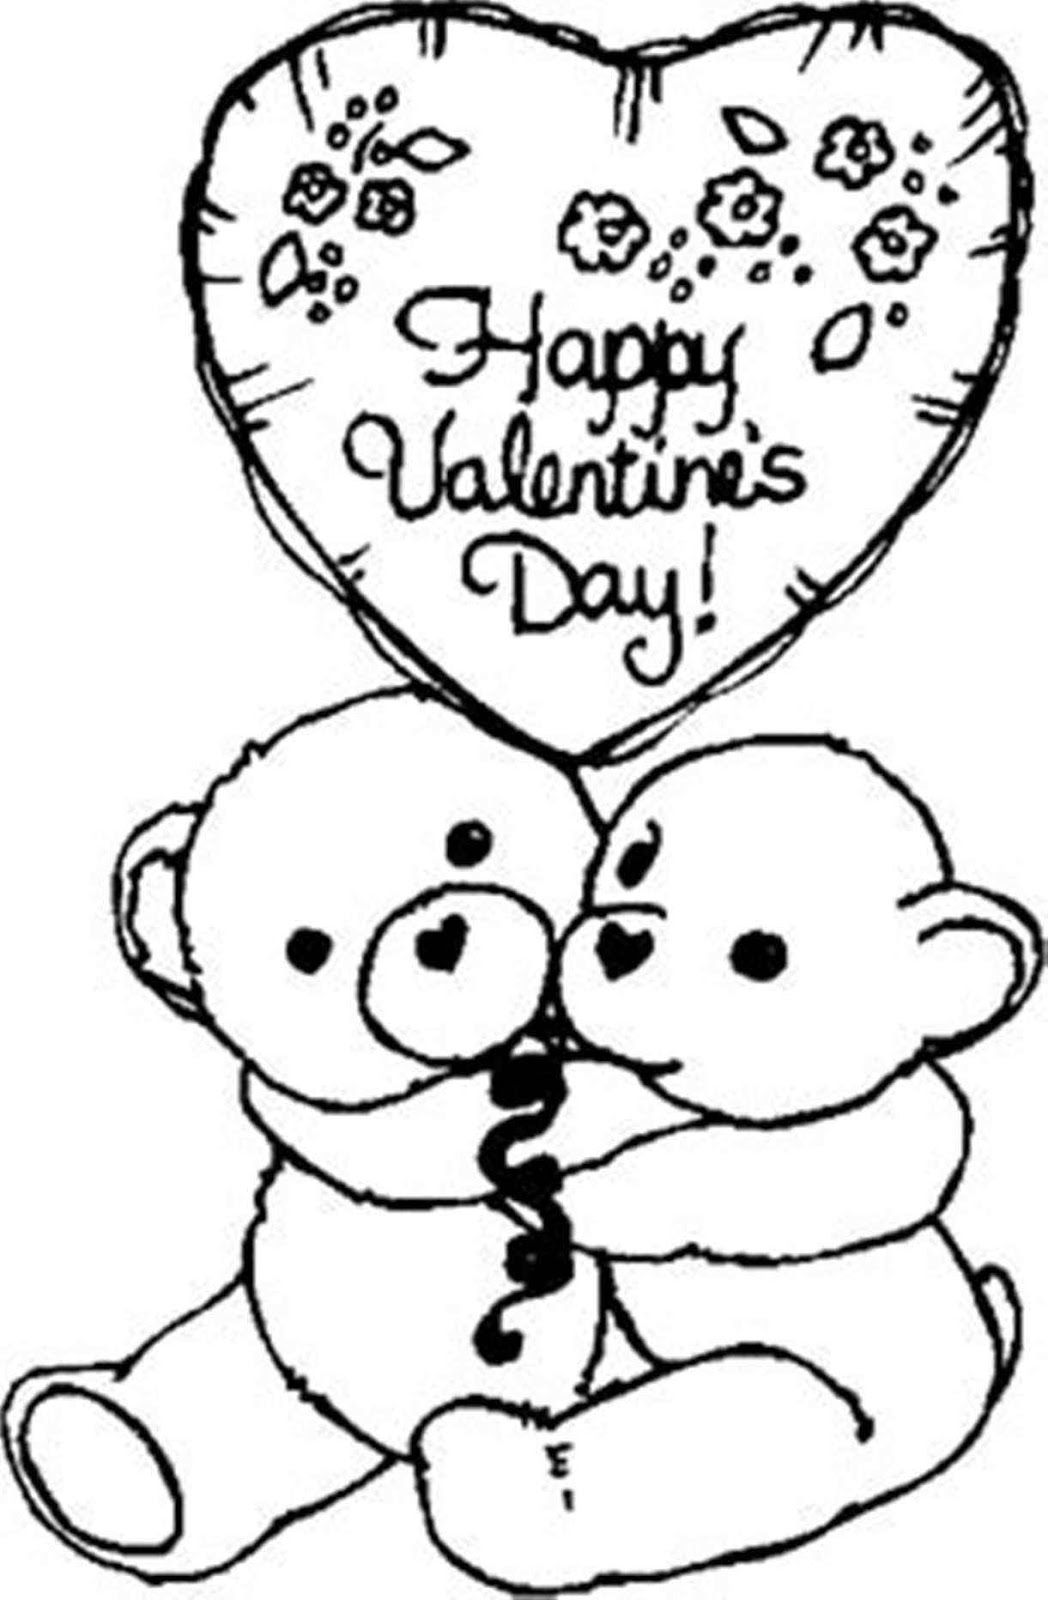 S coloring pages print - Happy Valentines Day Hearts Coloring Pages Valentines Heart